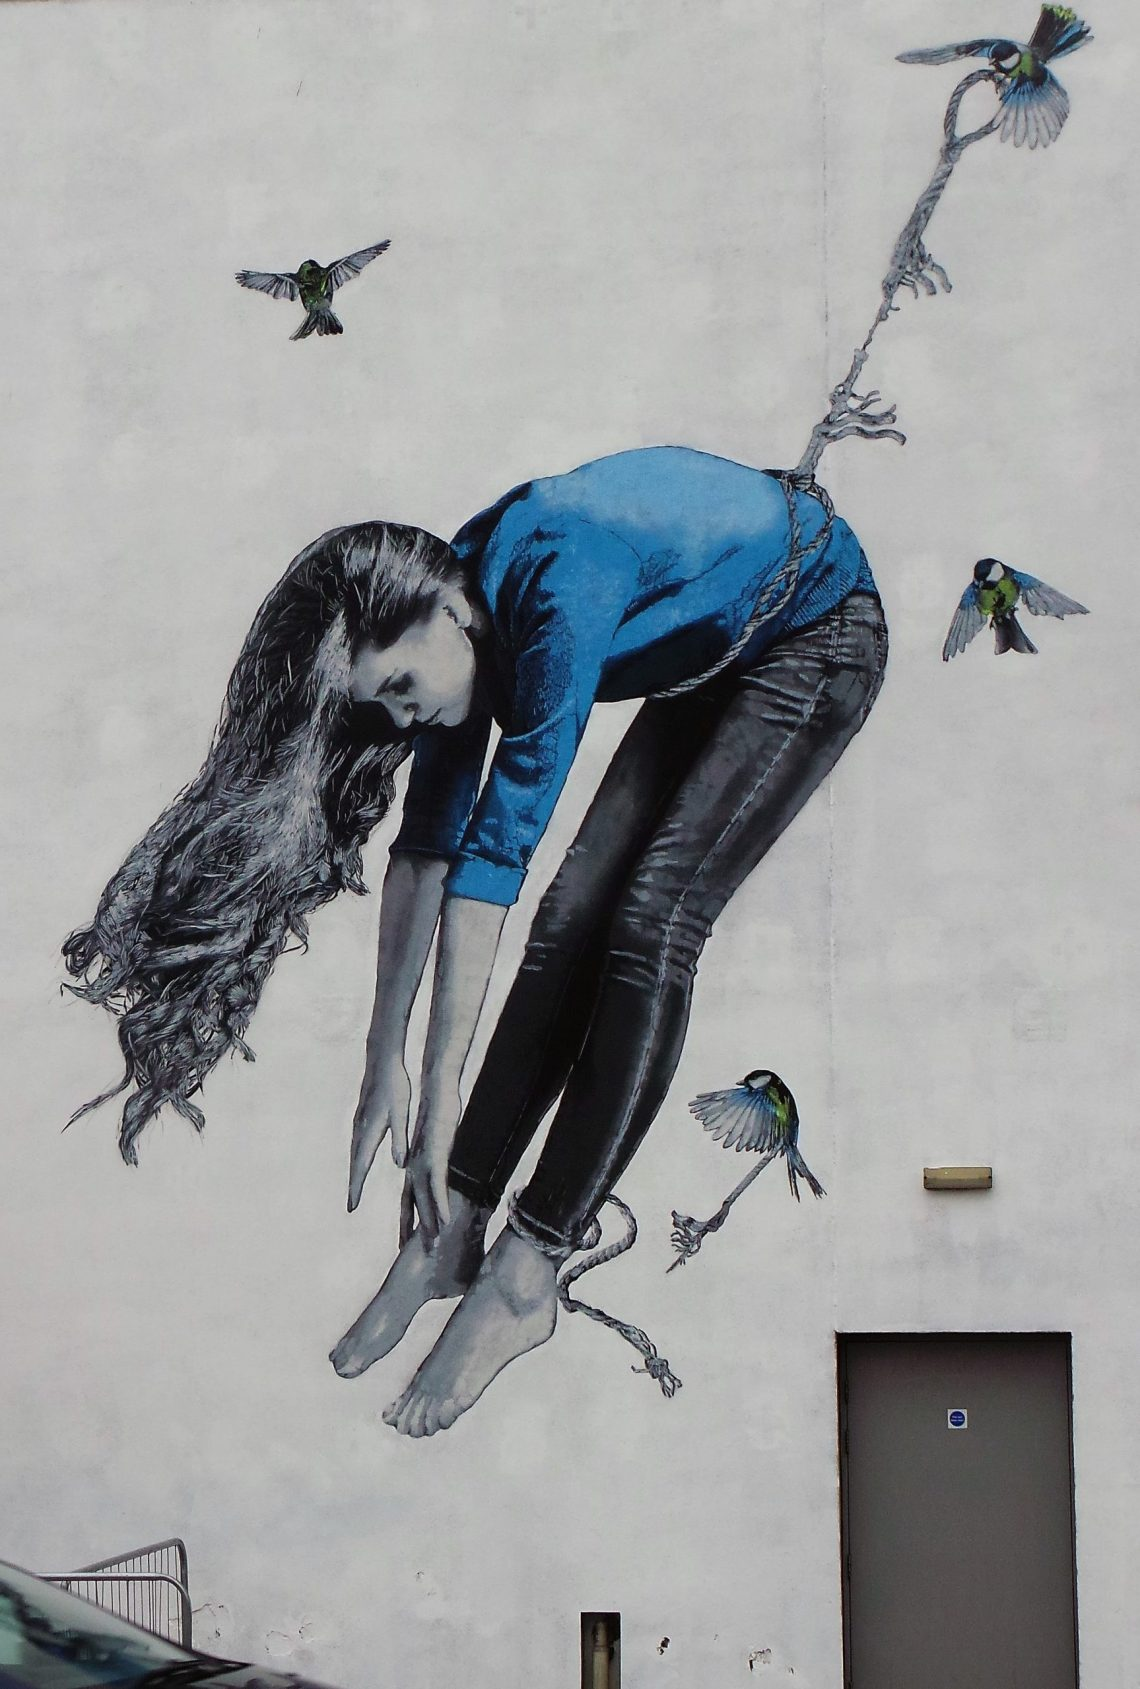 Street art mural by Snik on Virginia Street in Aberdeen